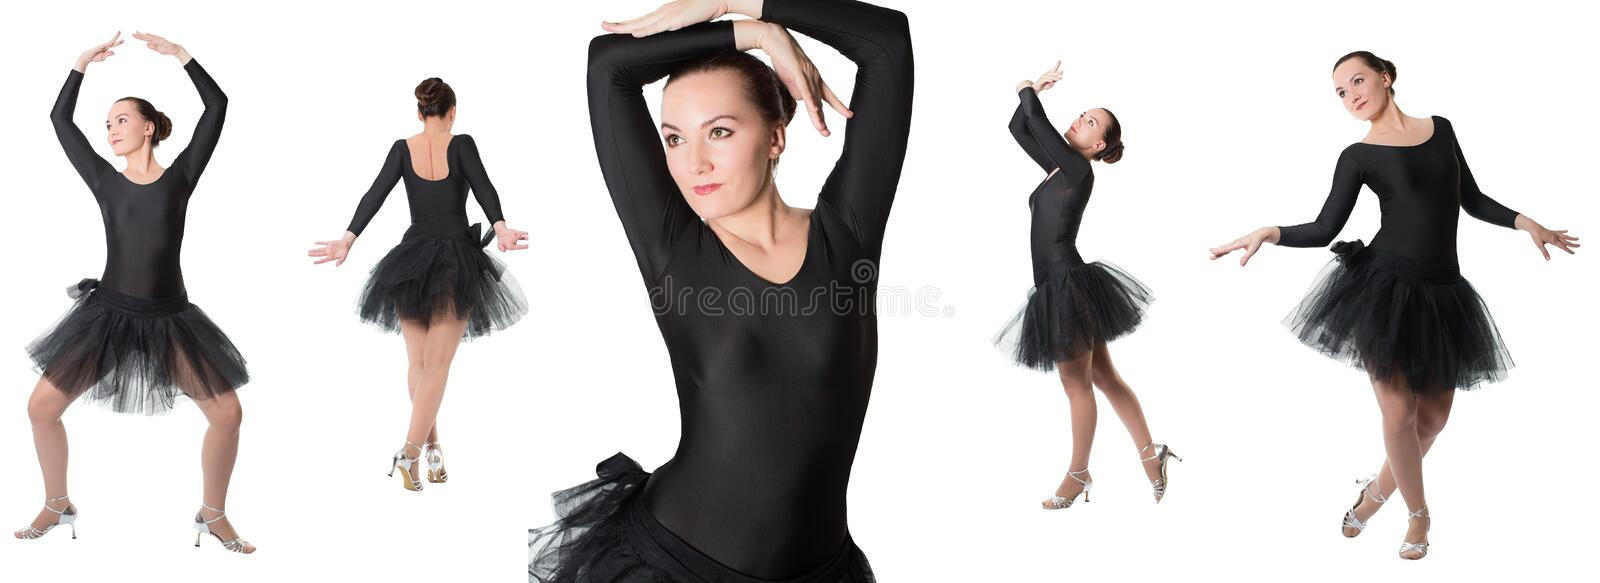 Collage of woman ballerina dancer standing pose